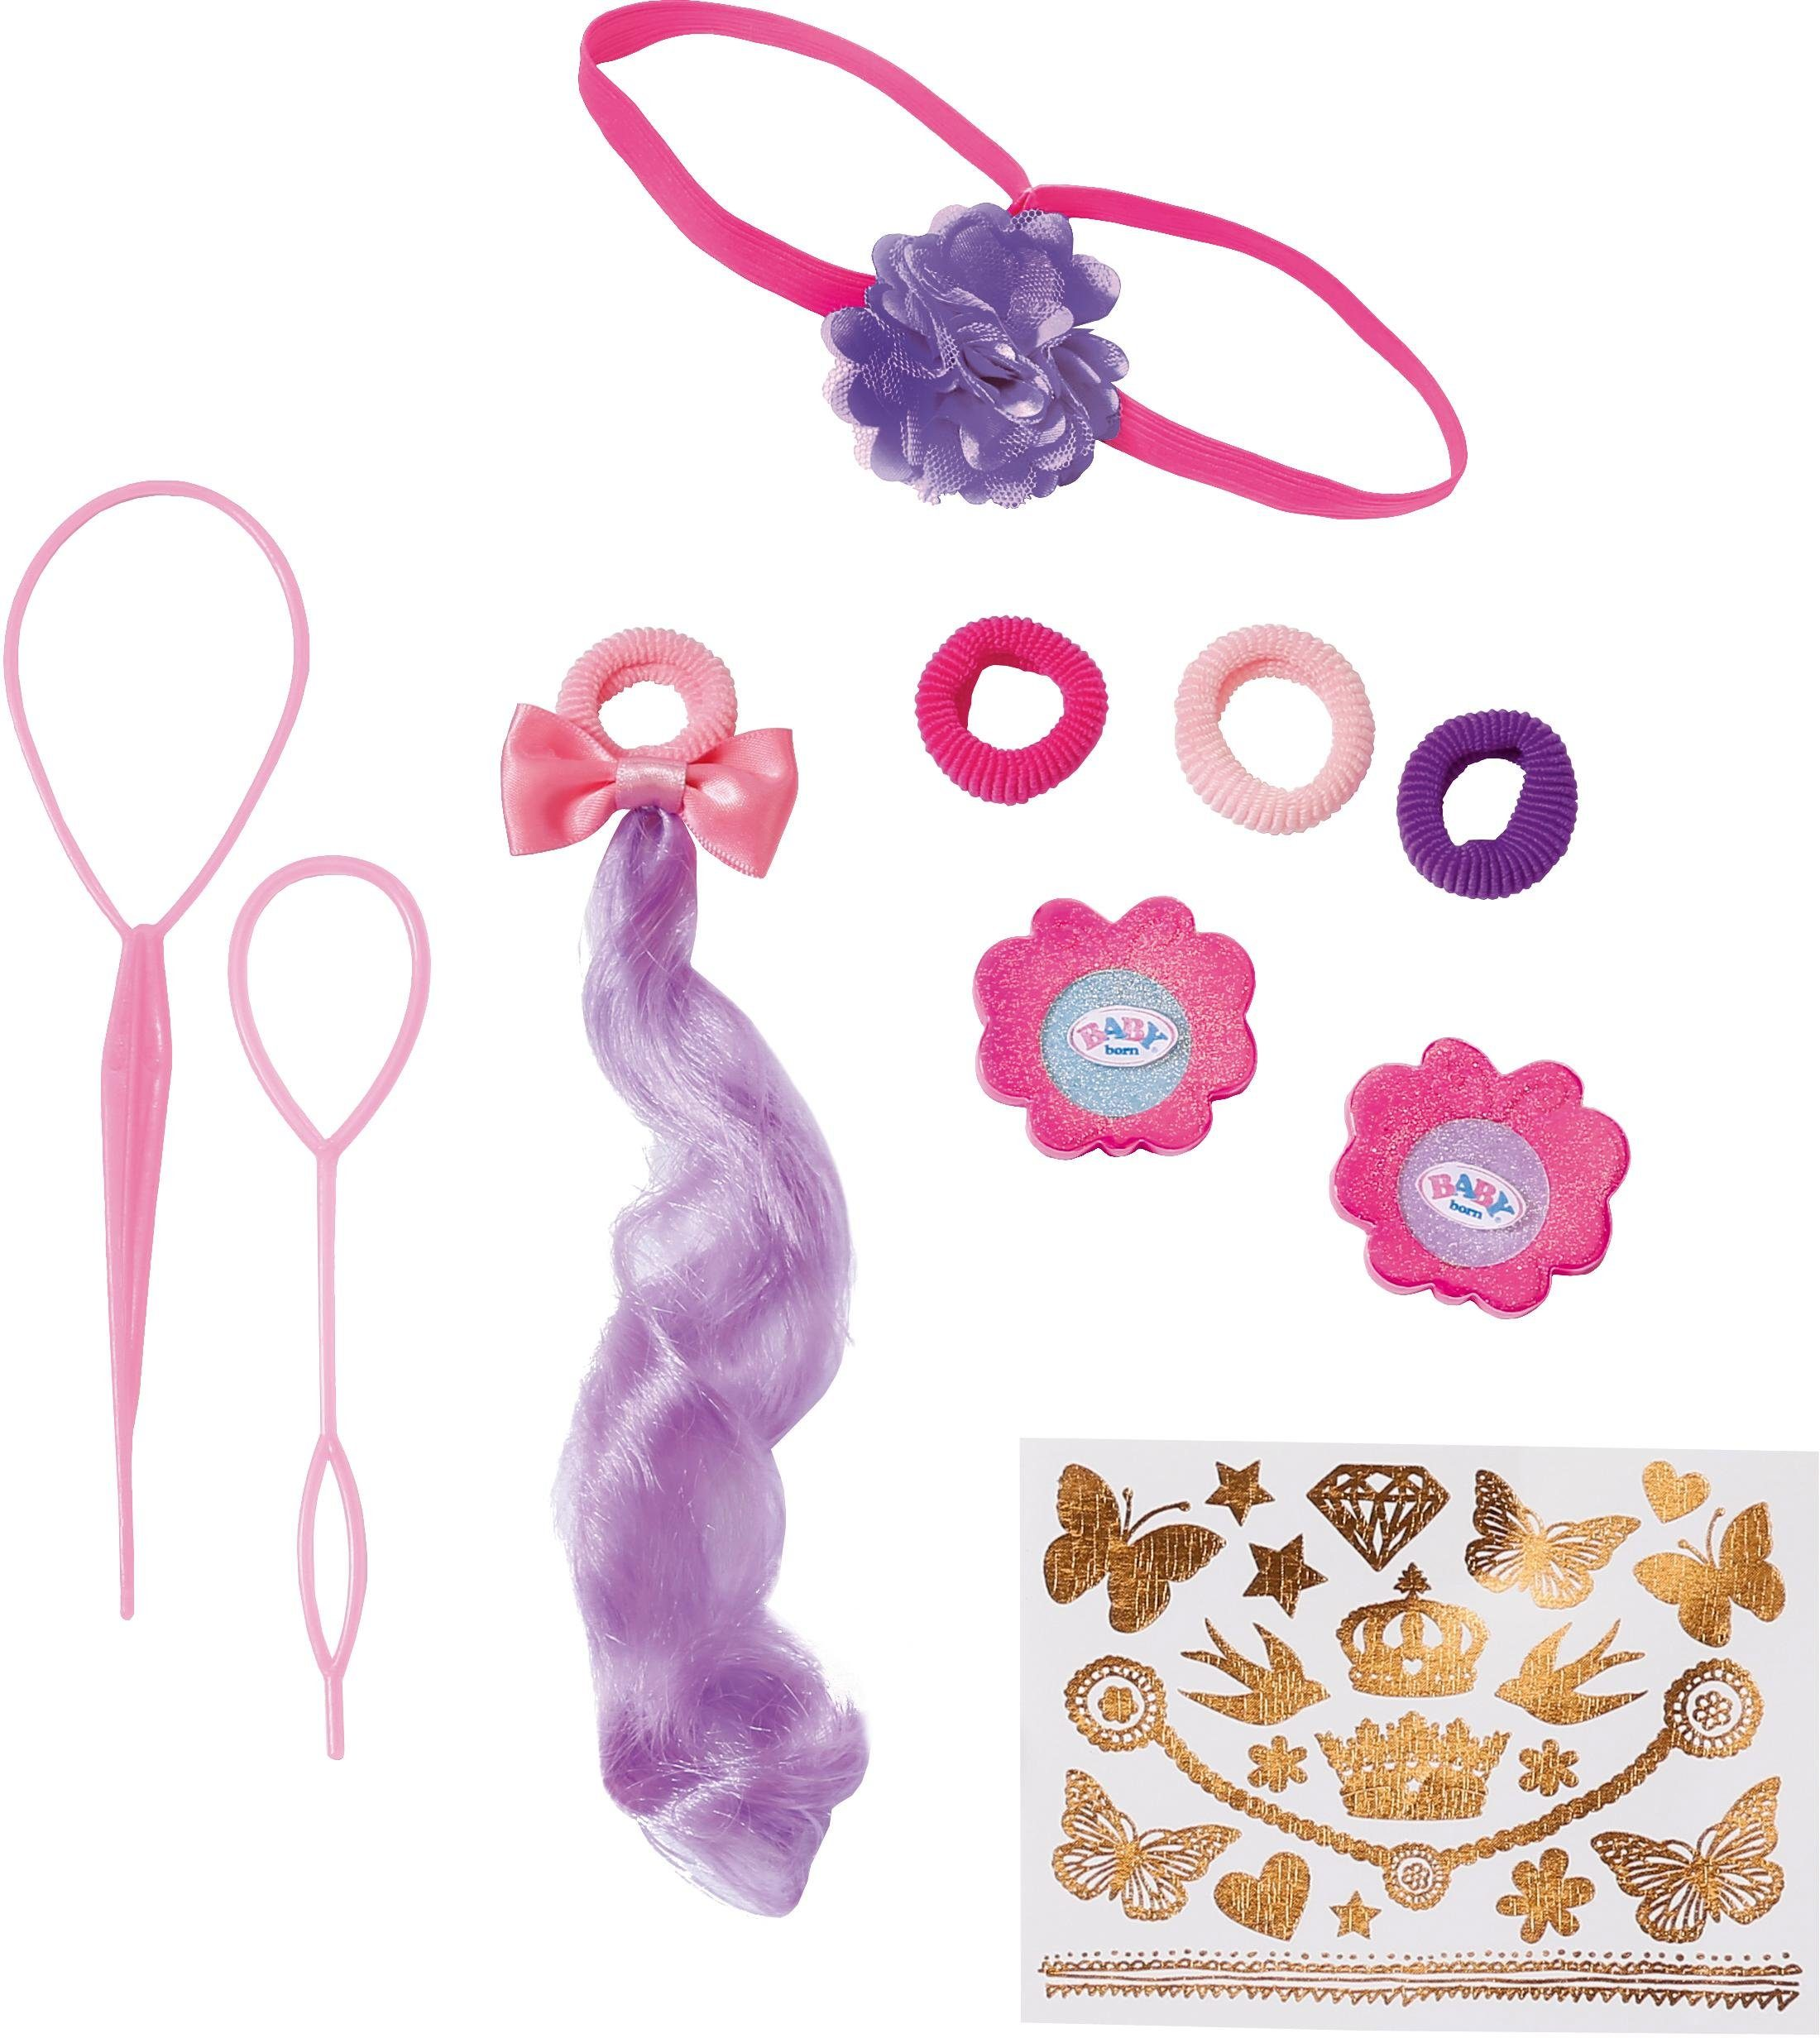 Zapf Creation Stylingkopf Zubehör, »BABY born® Sister Styling Head Accessories«